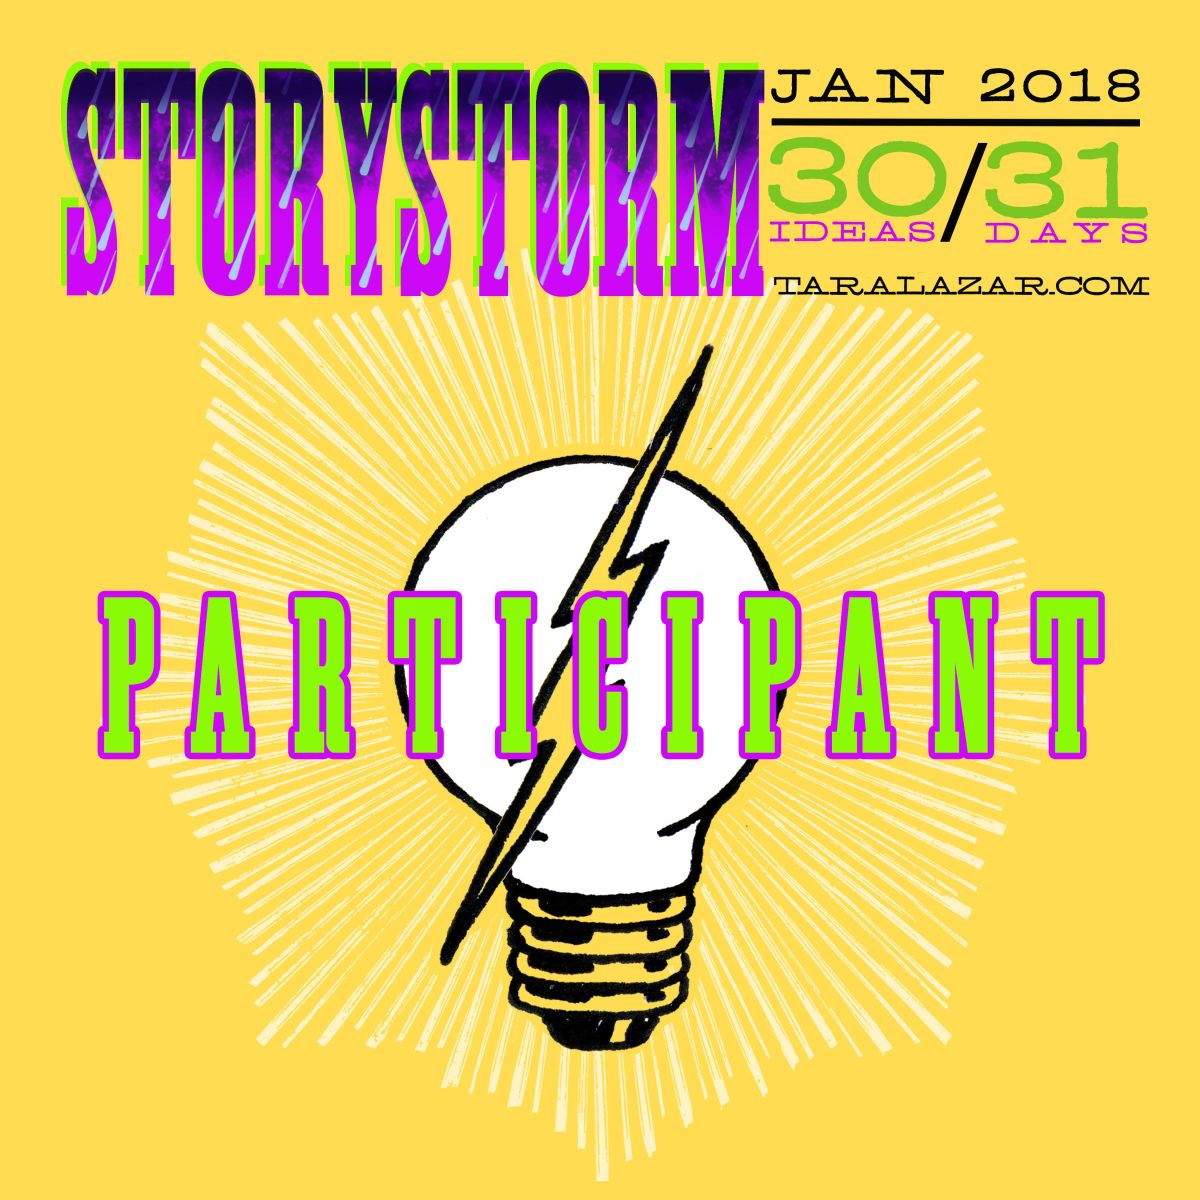 STORYSTORM 2018 Registration is OPEN!